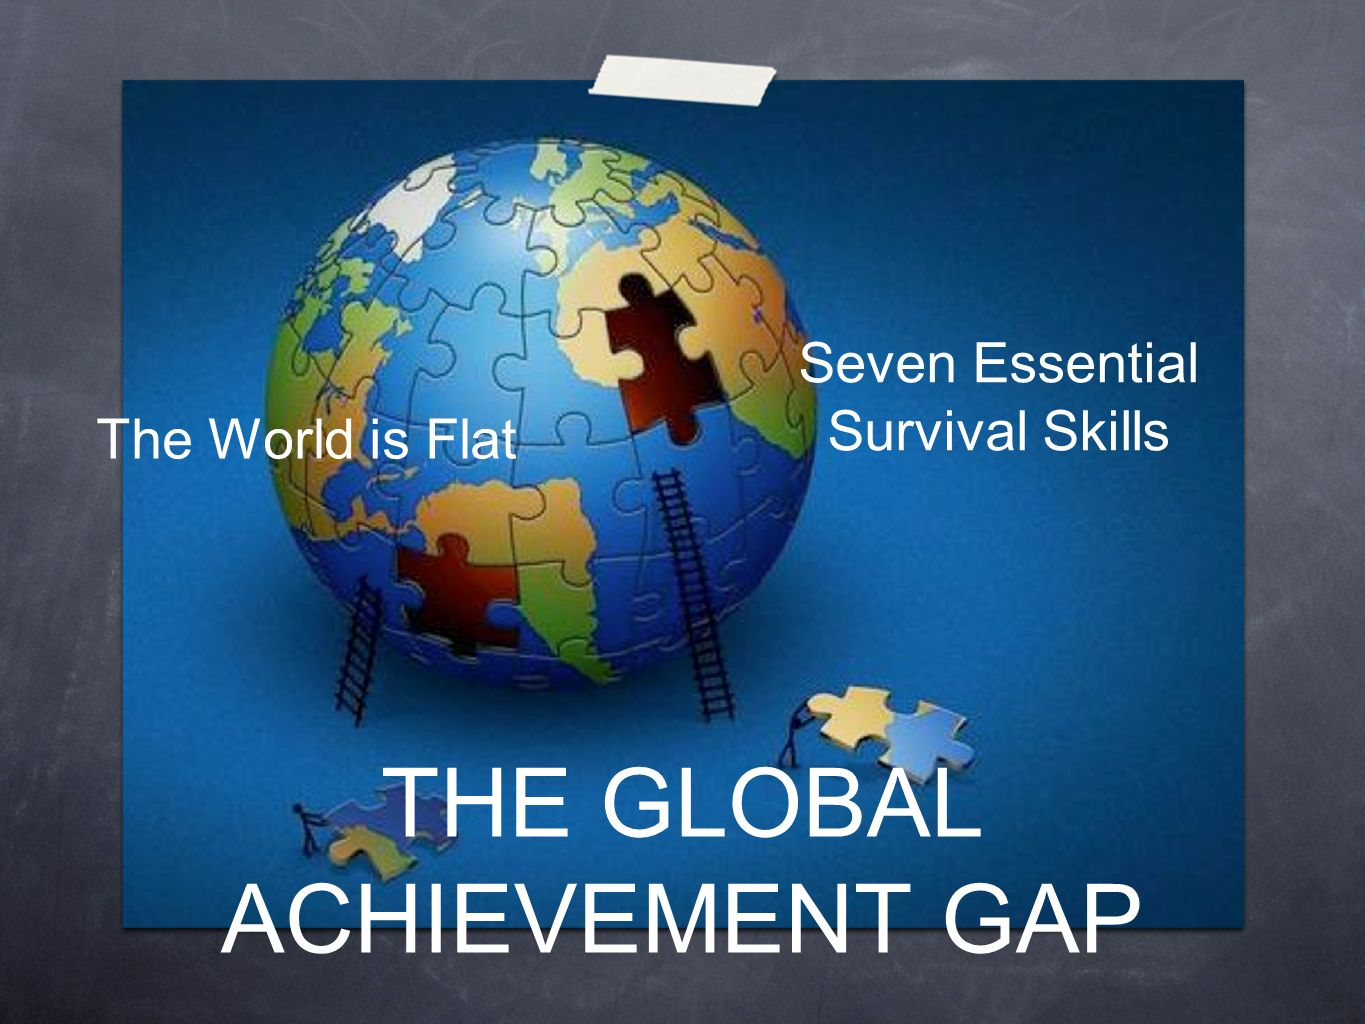 THE GLOBAL ACHIEVEMENT GAP Seven Essential Survival Skills The World is Flat